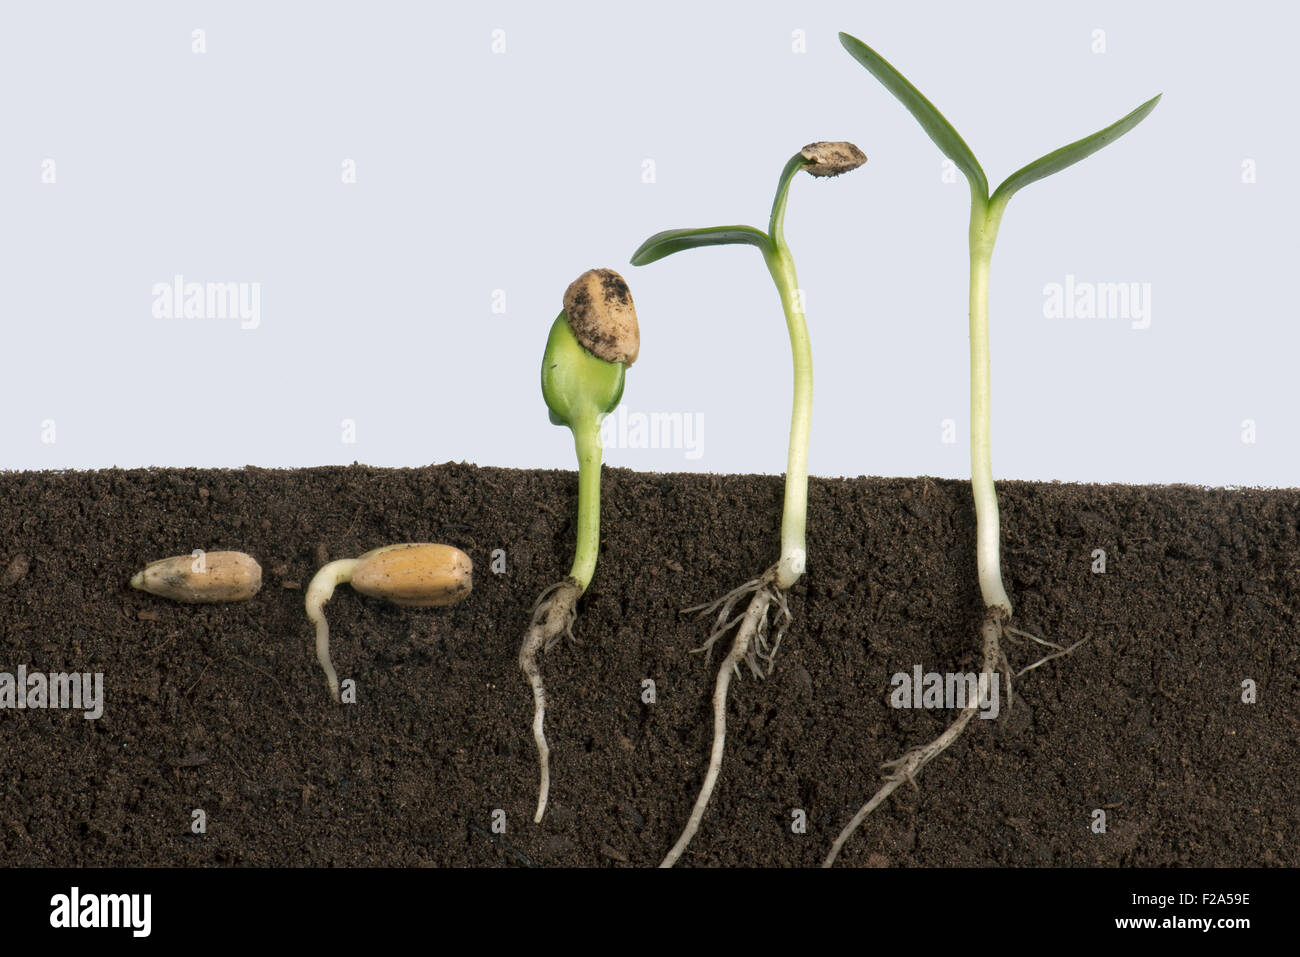 Sequence of sunflower seeds going through various stages of germination  from below soil to cotyledons